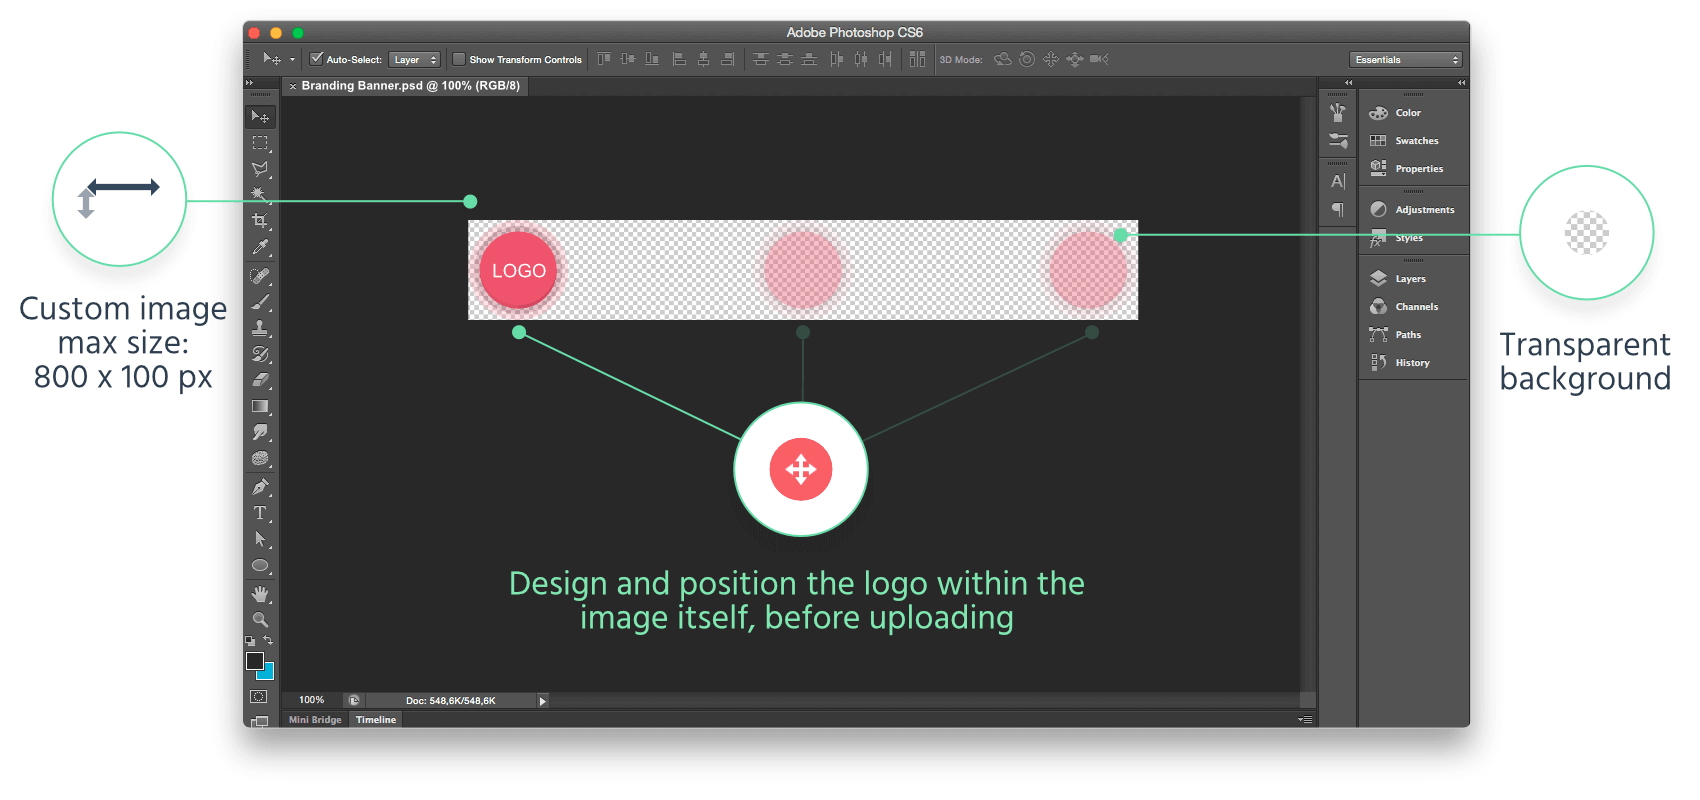 Make an image which is at least 670px wide, and maximum 100px high. Then align your logo inside it. You can also export your image with a transparent background to get nice visual effects in your questionnaire.